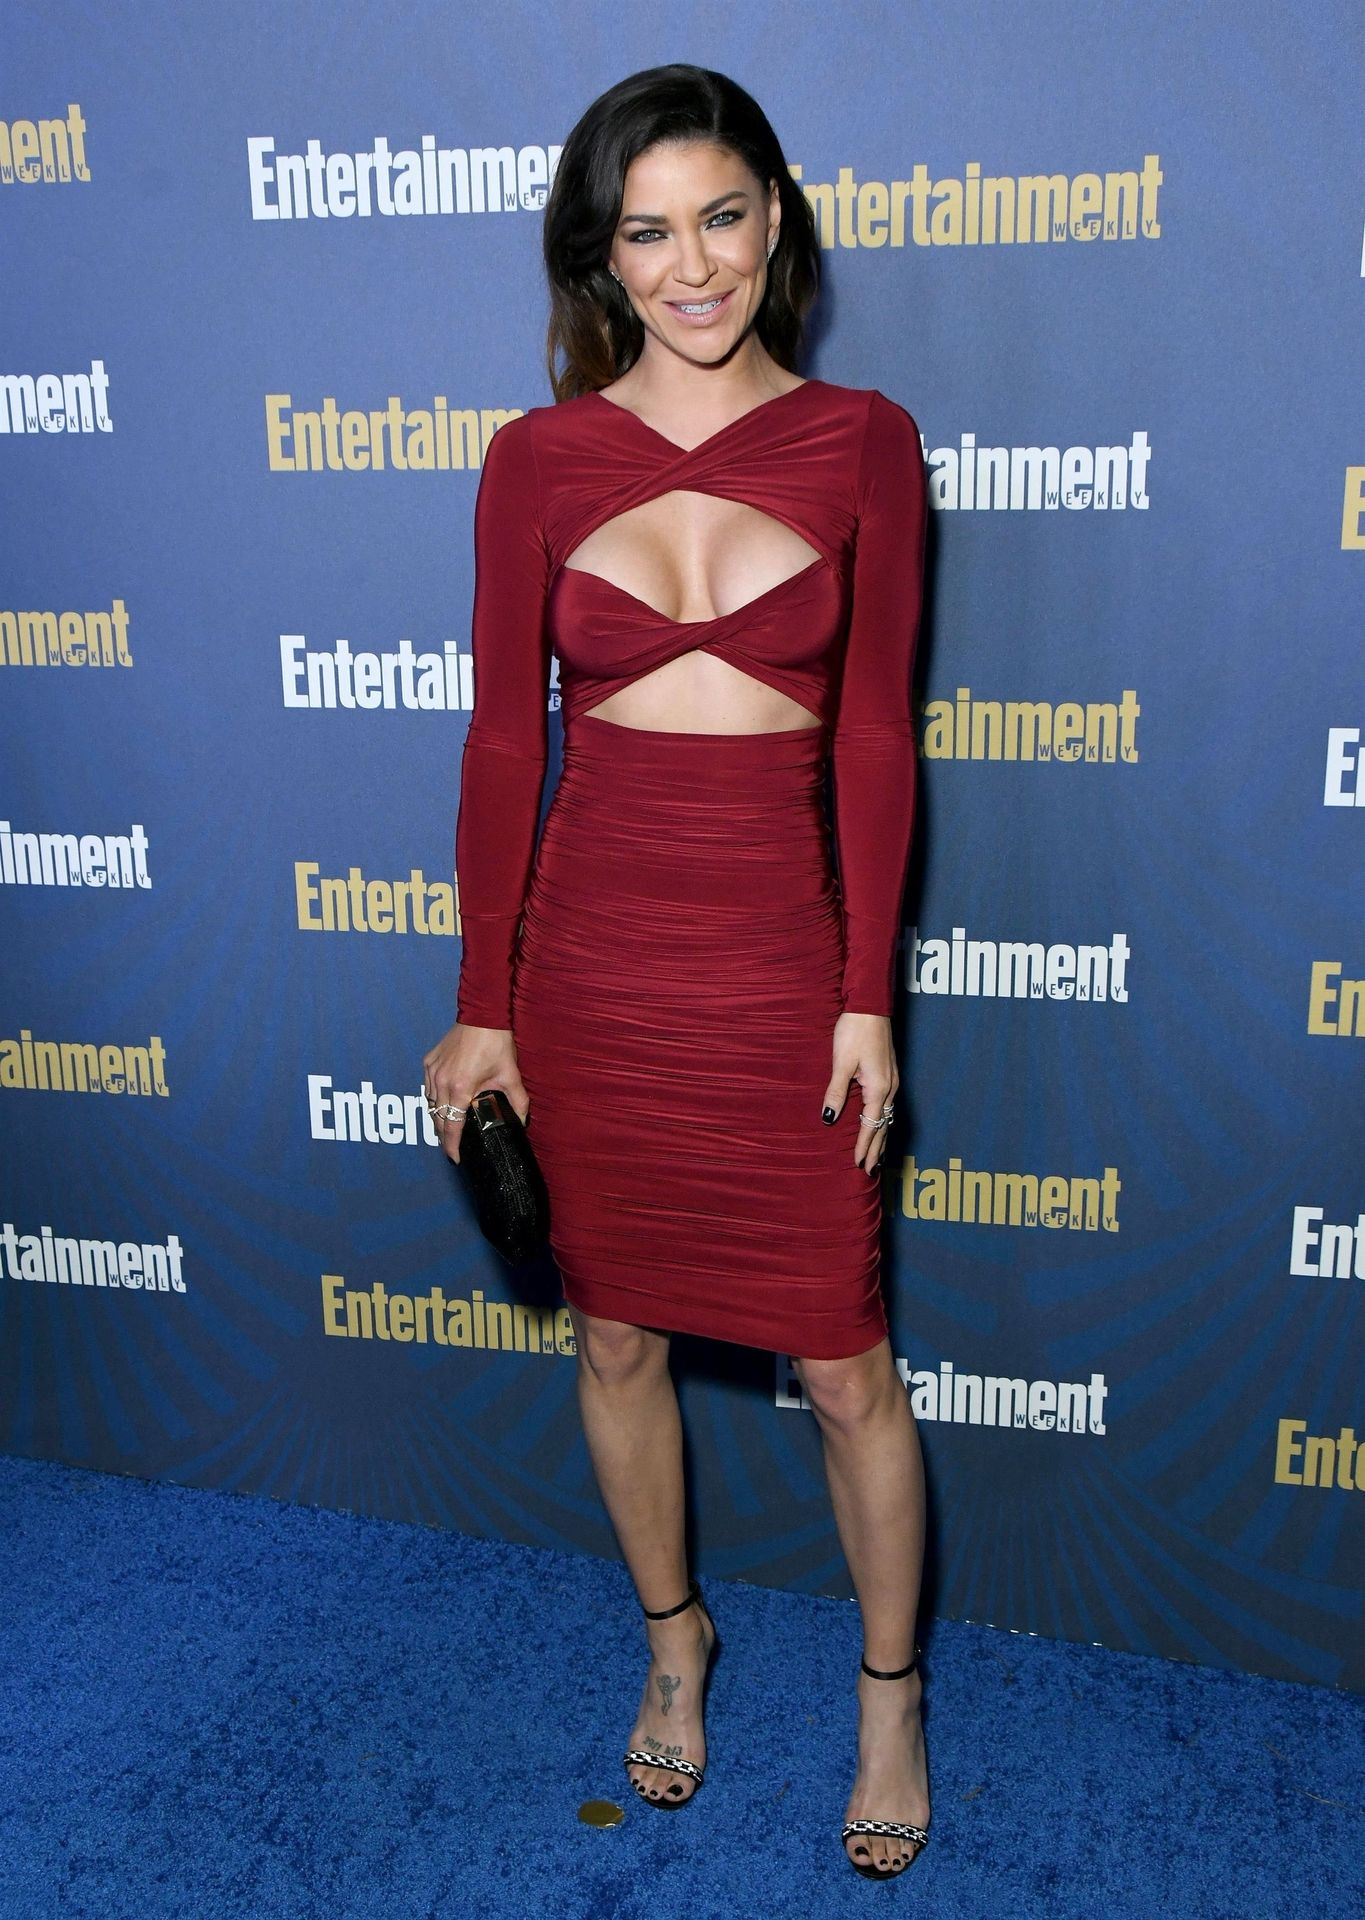 Jessica Szohr Shows Her Cleavage At The Entertainment Weekly Pre Sag Awards Celebration 0008